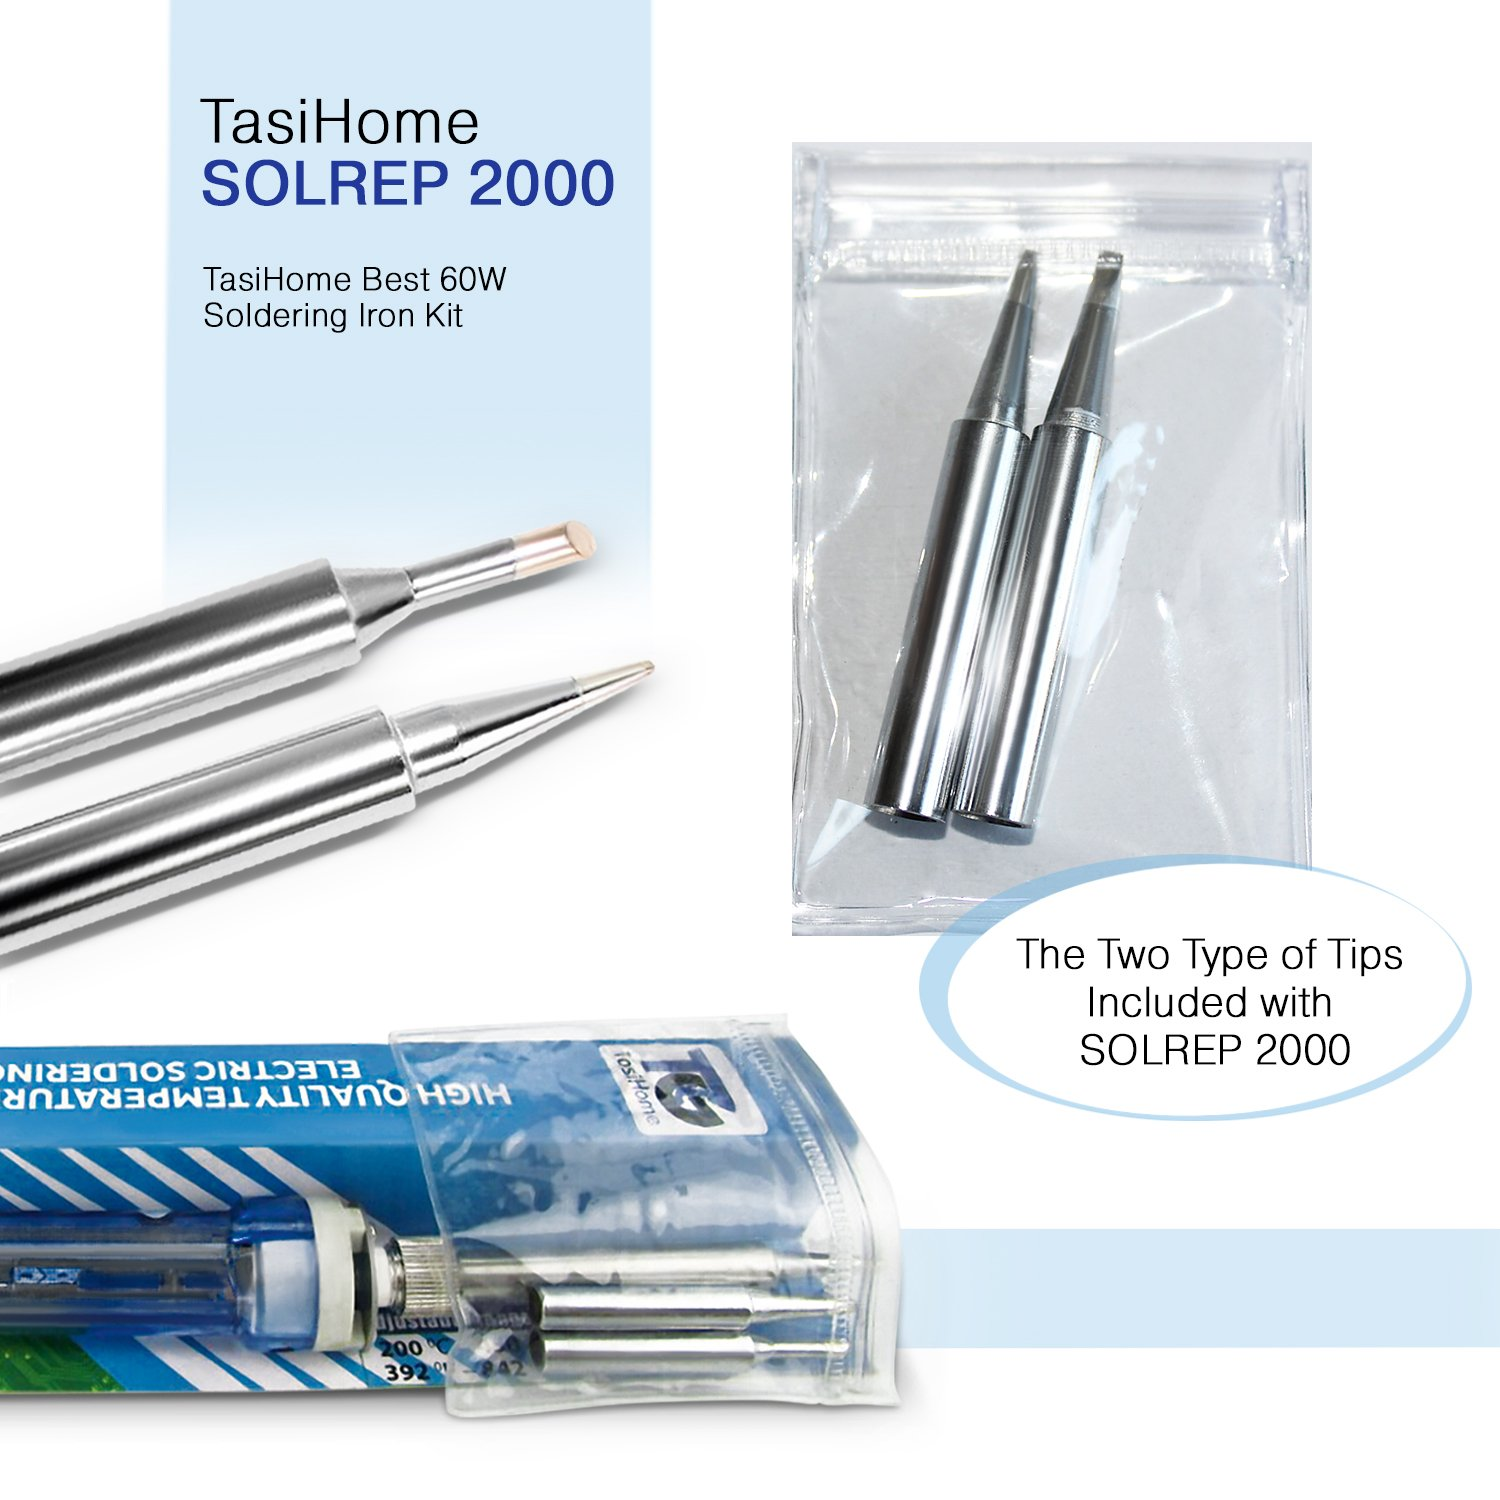 TasiHome 110 V 60W Soldering Iron Kit With Temperature Adjustment For Reliable Electronic Circuit Repairs By Eliminating Component Damage. Robust Electrical And Jewelry Repairs by TasiHome (Image #7)